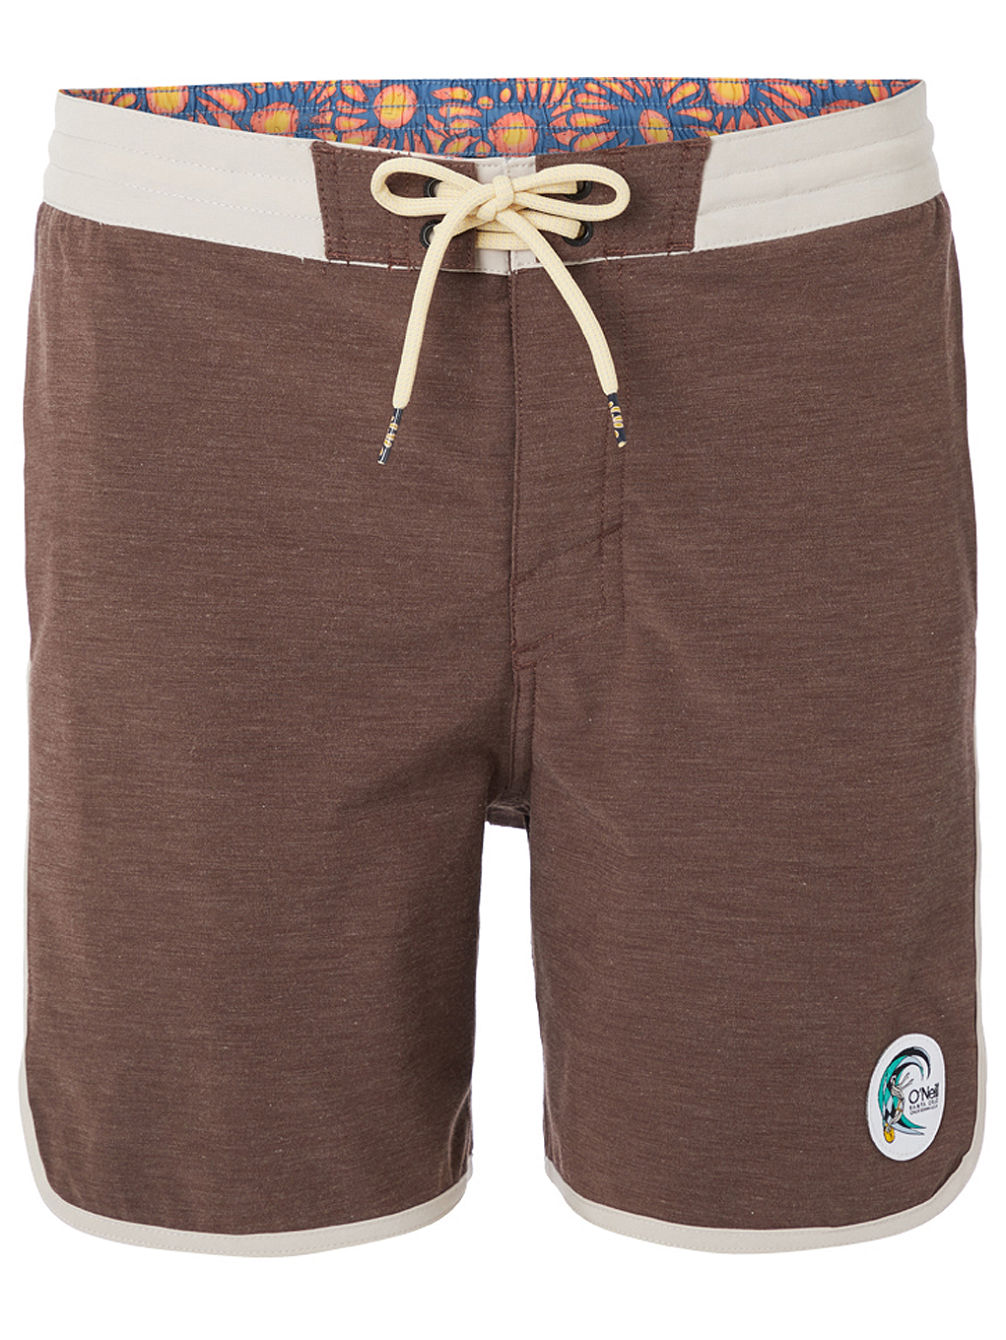 Original Scallop Boardshorts